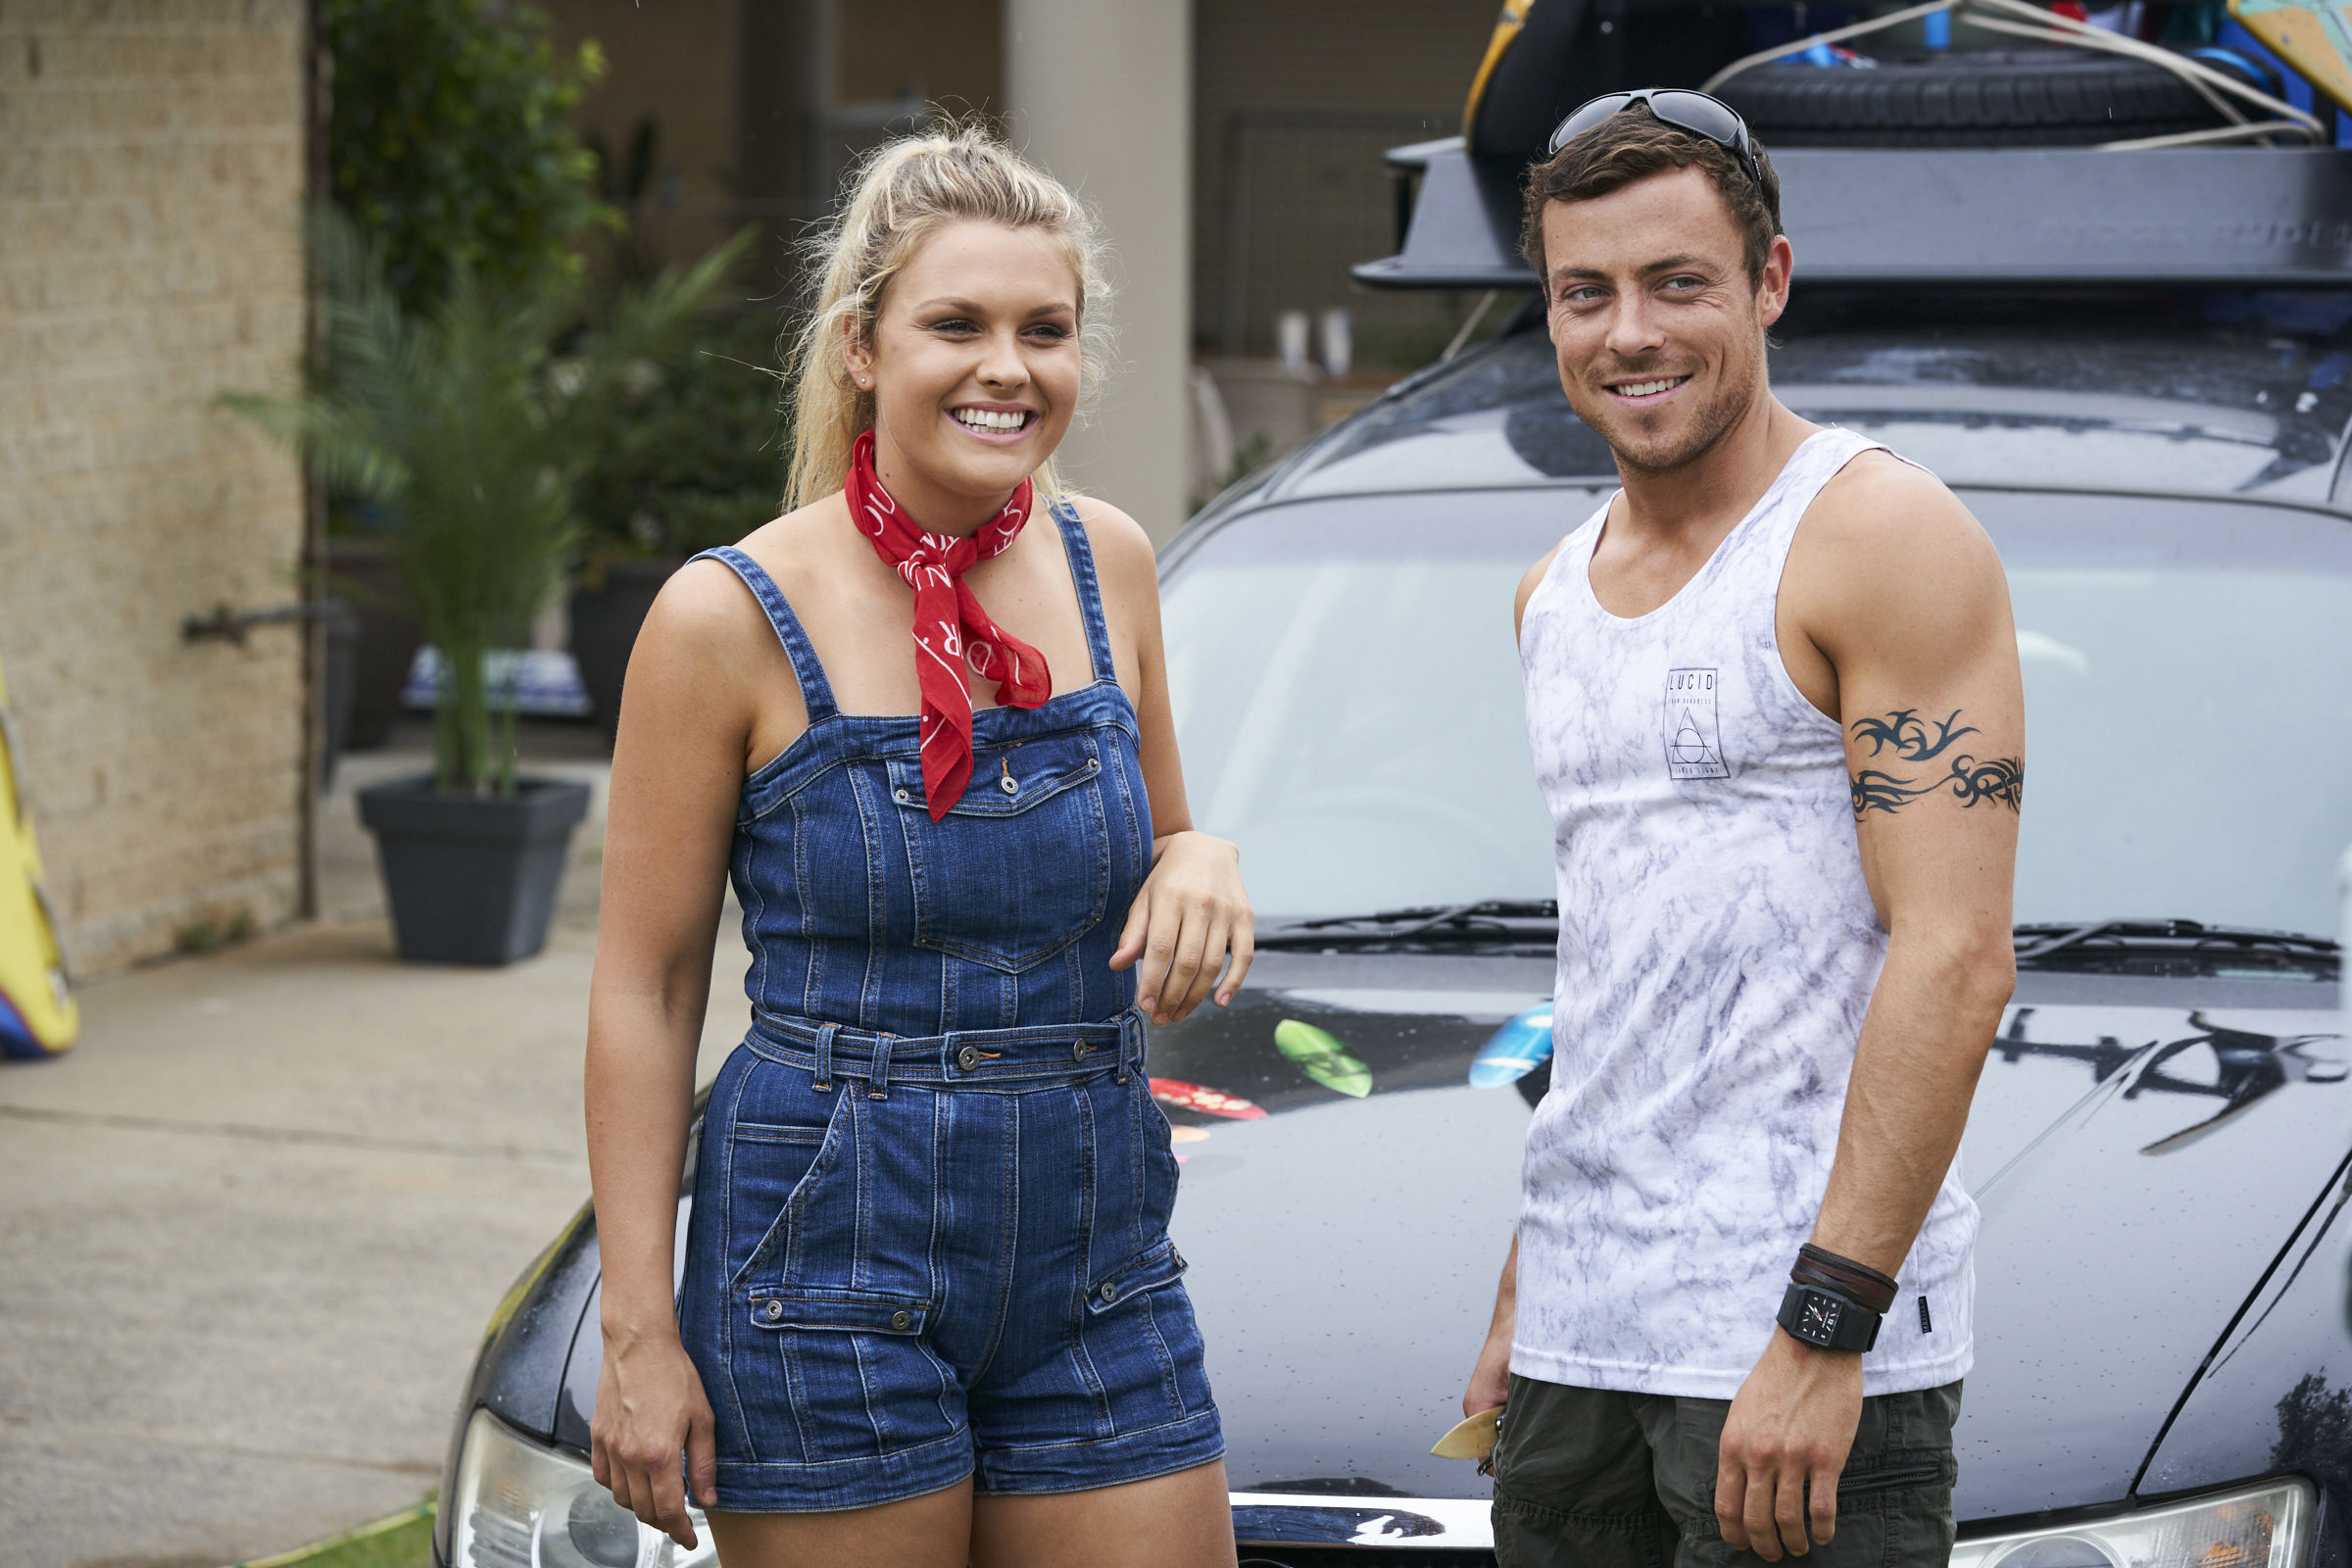 Home and Away has set return date after being taken off air amid coronavirus pandemic